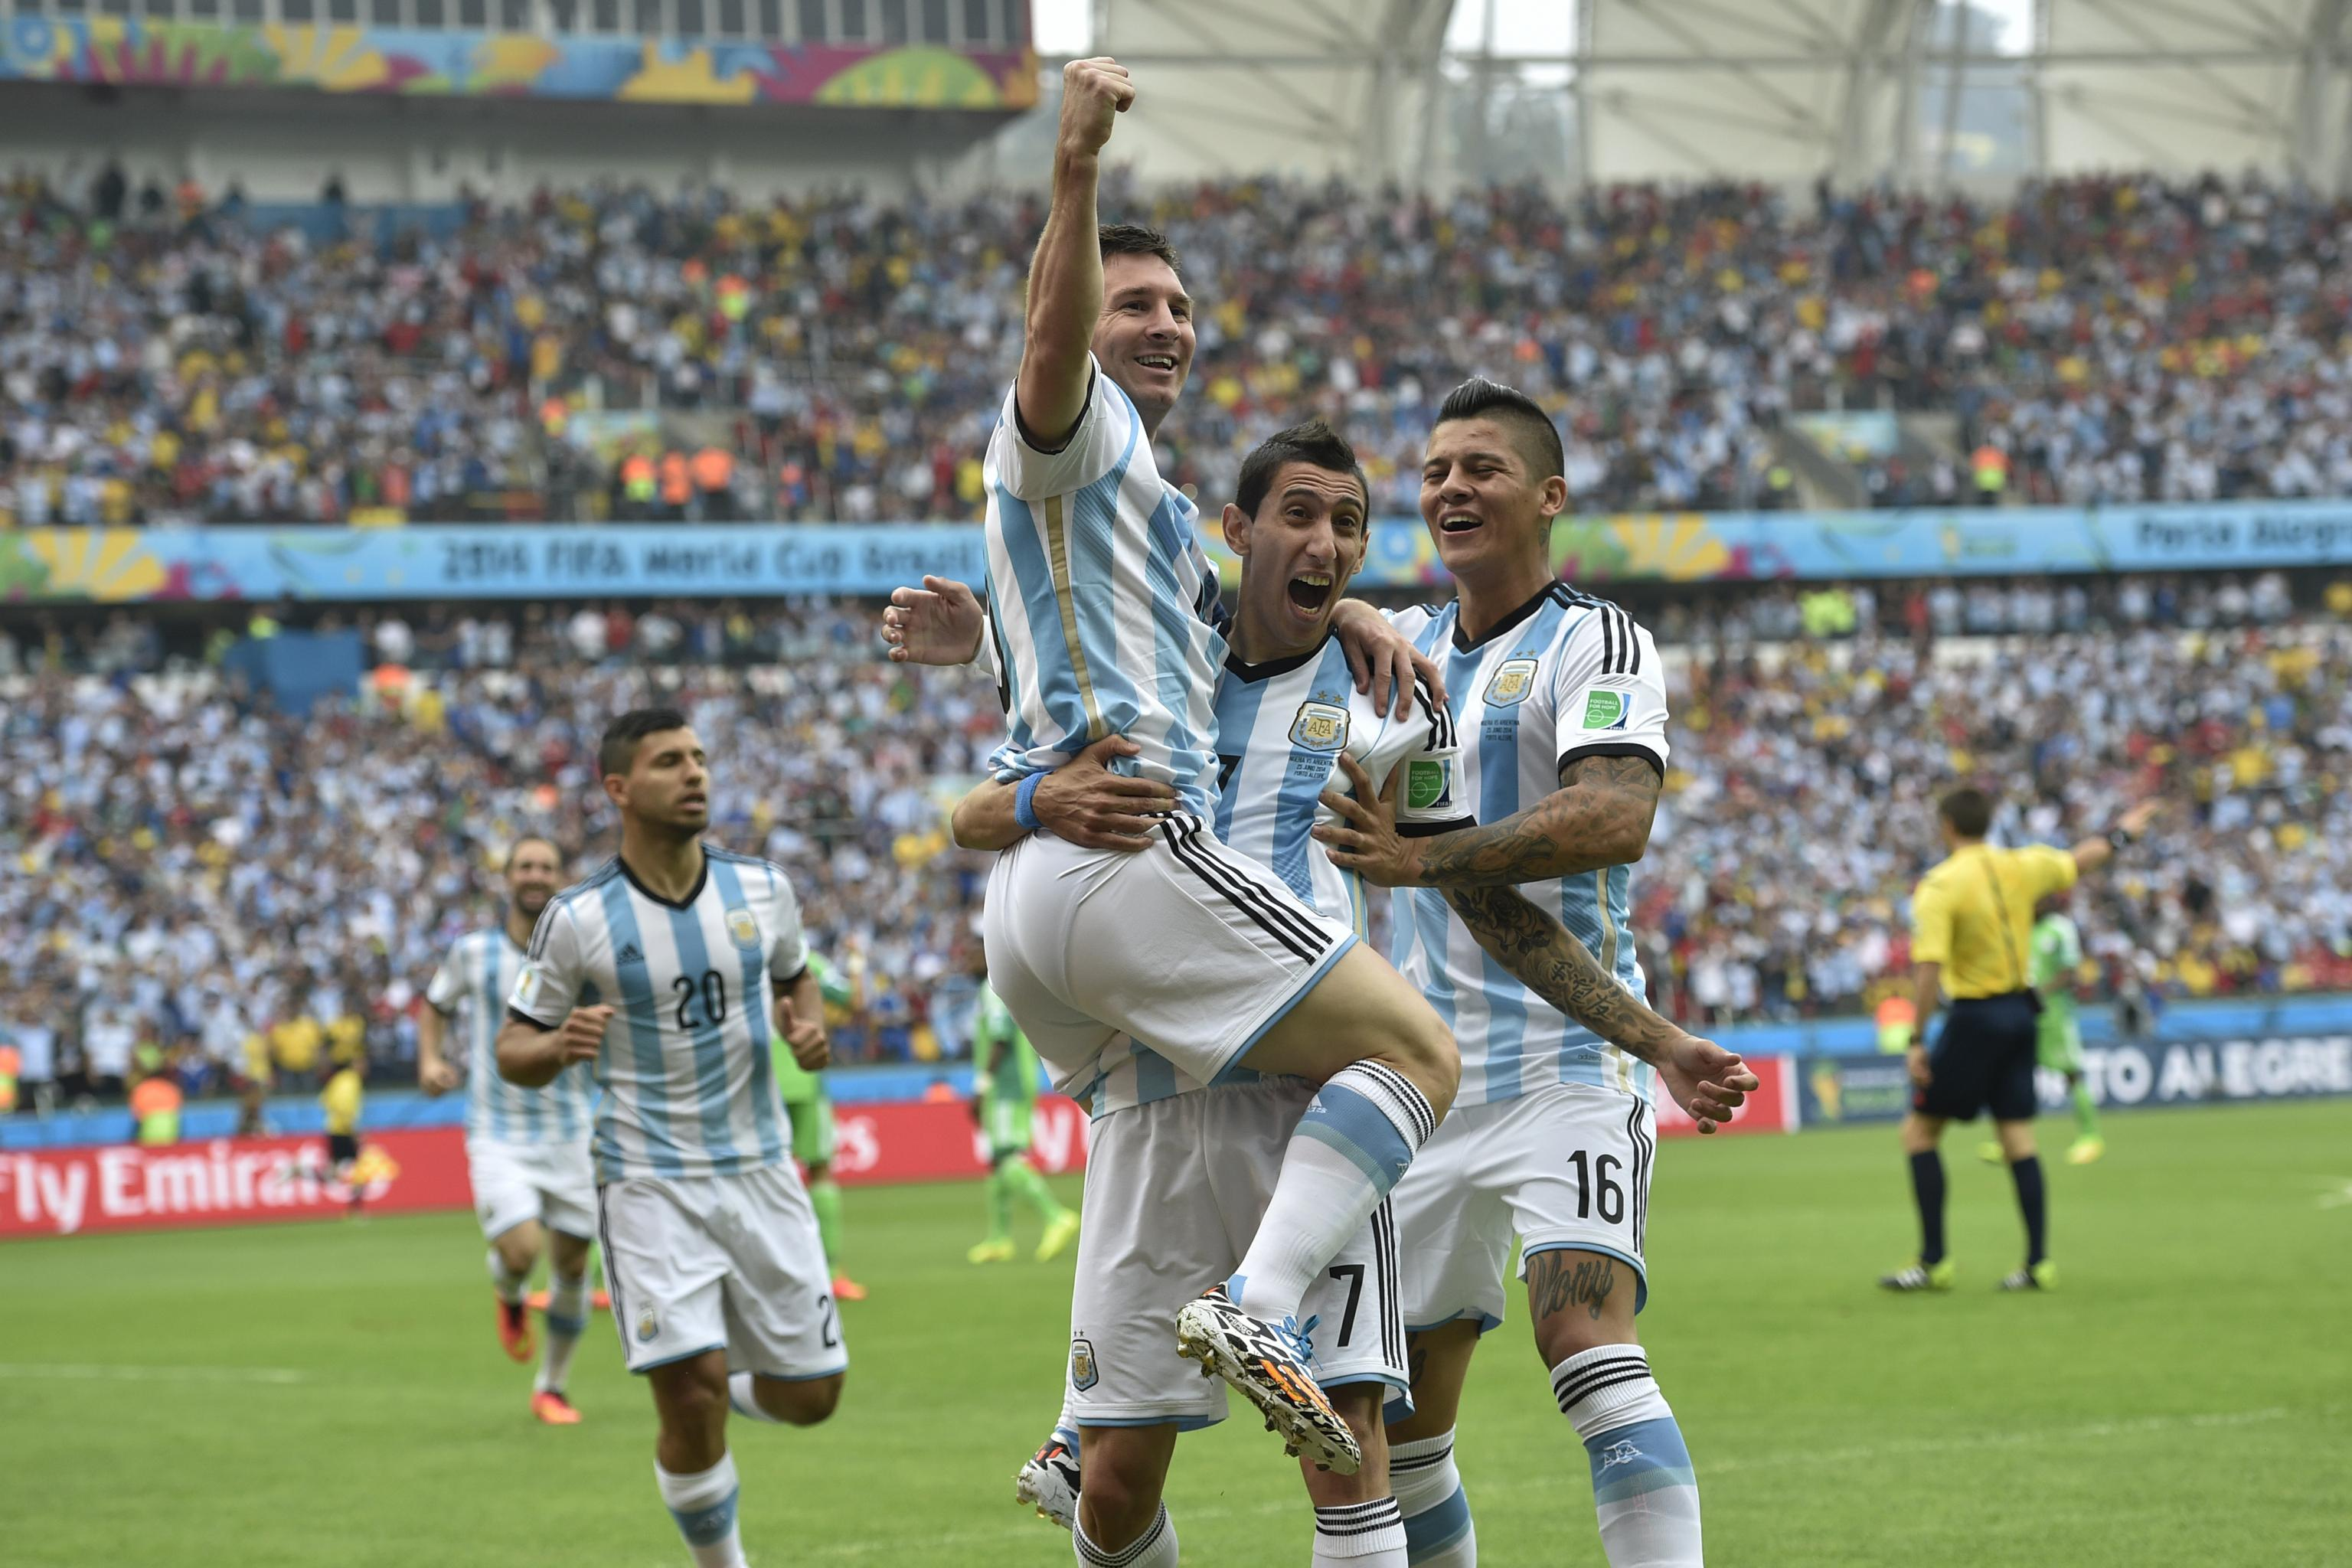 Argentina vs belgium betting preview pomo live betting odds